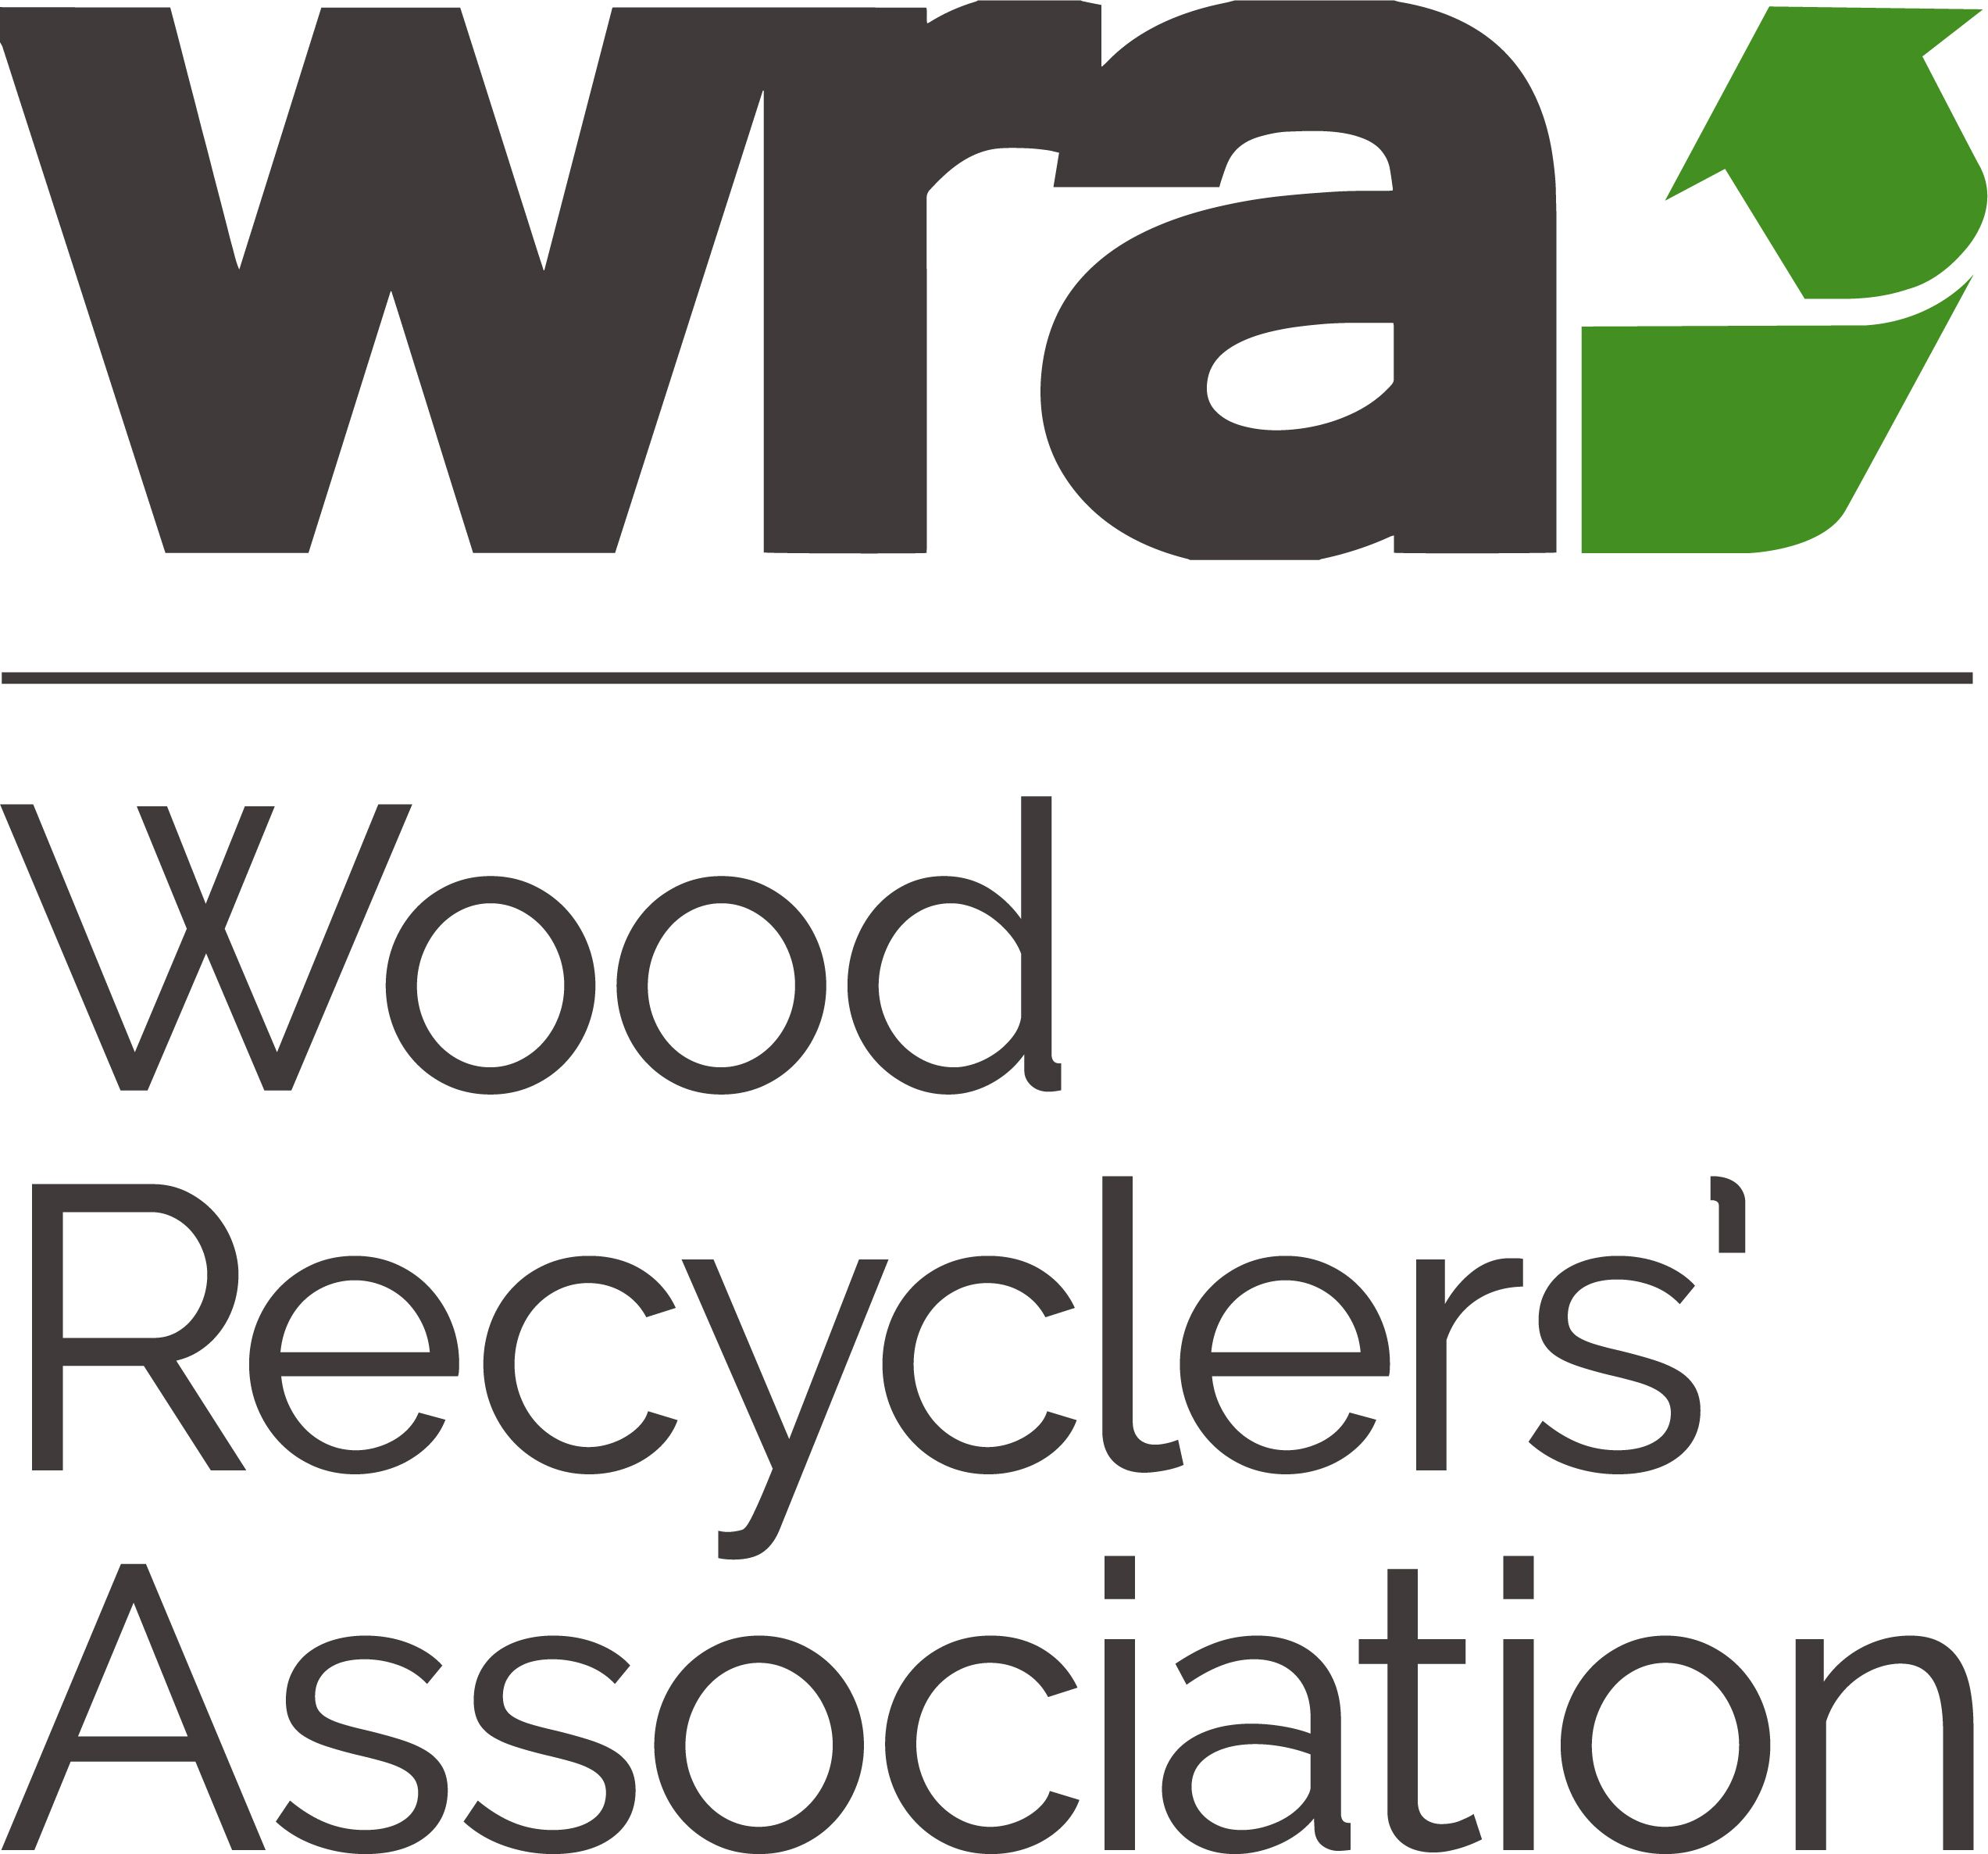 Wood Recyclers' Association